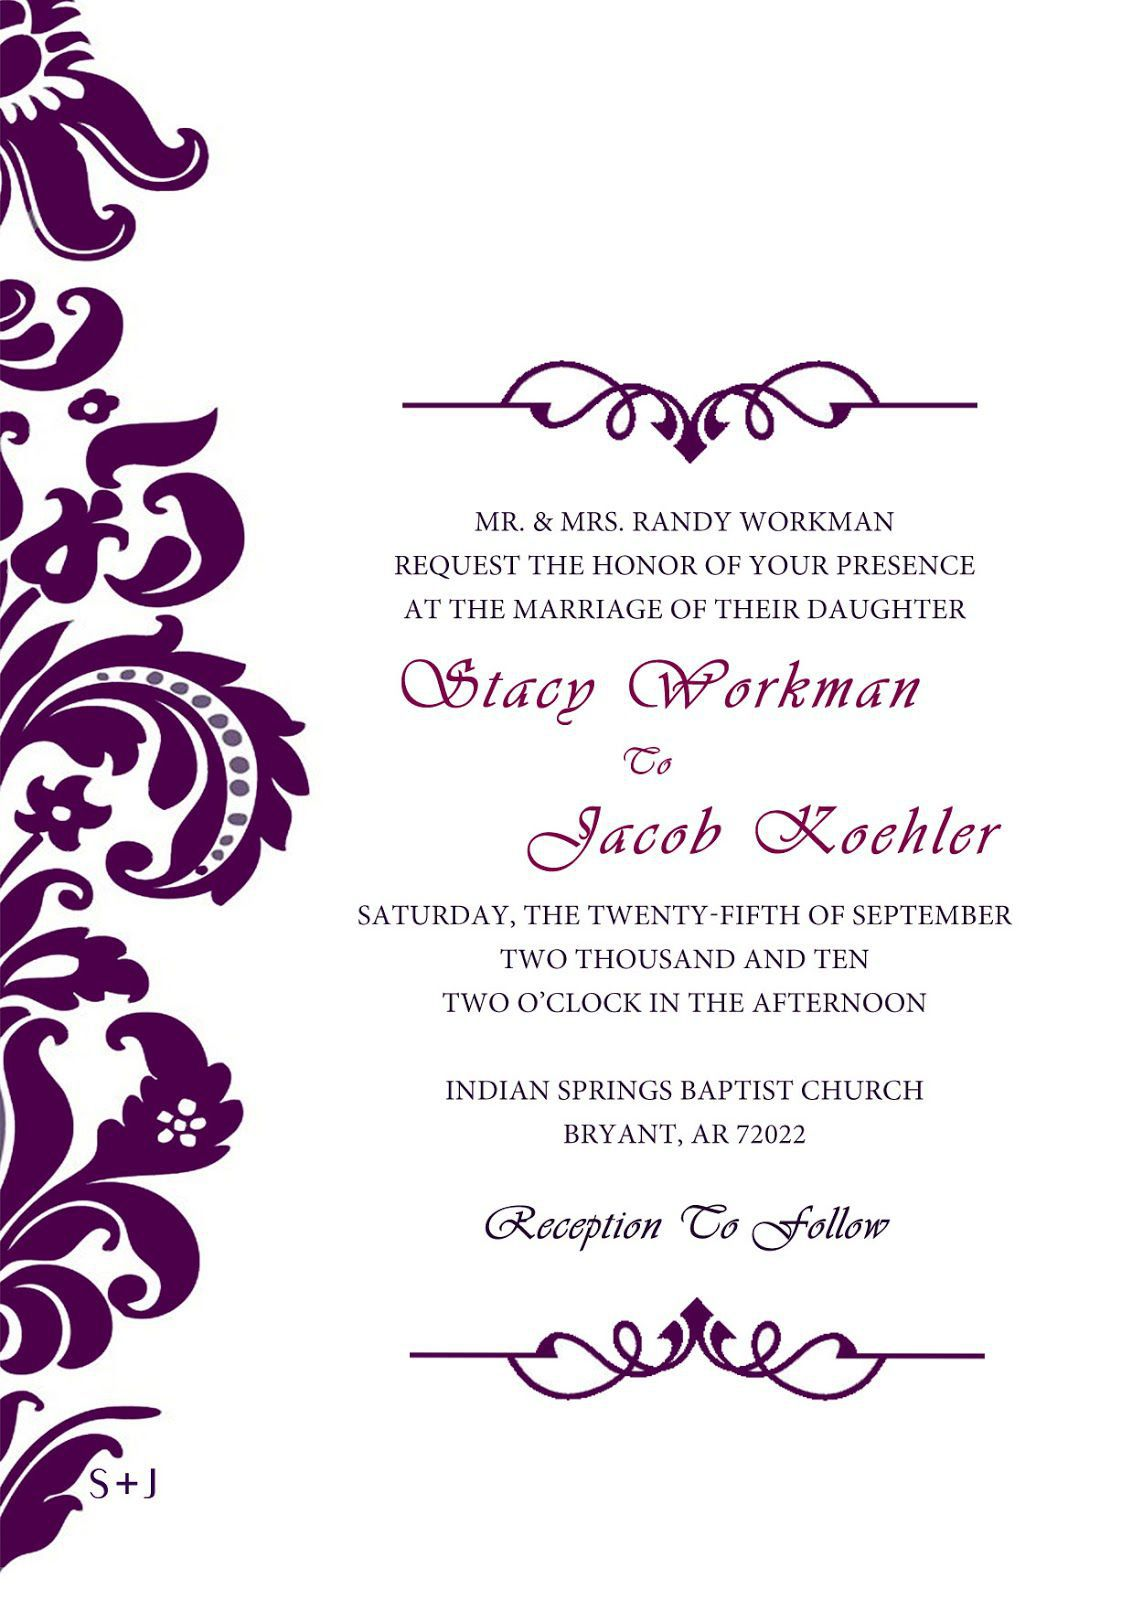 birthday invitation design online free ; wedding-invitation-cards-design-online-free